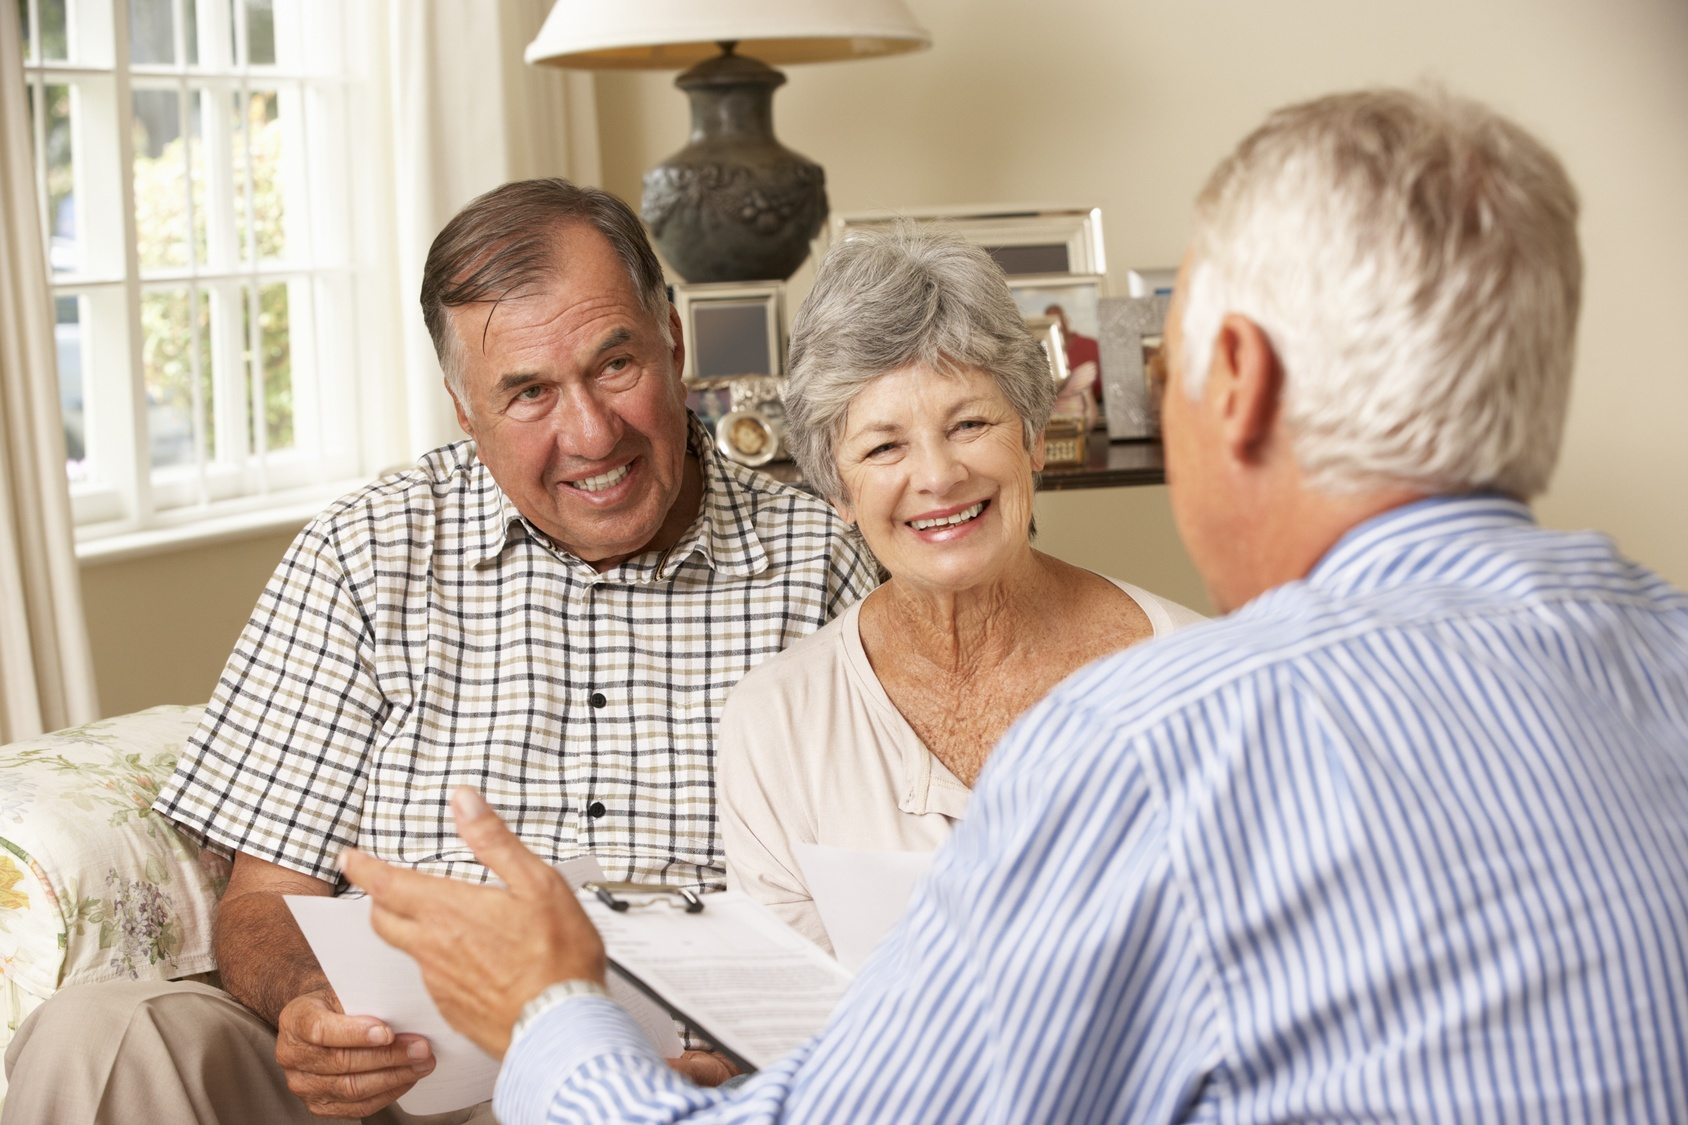 4 Strategies Businesses & Communities Can Use to Promote Positive Aging